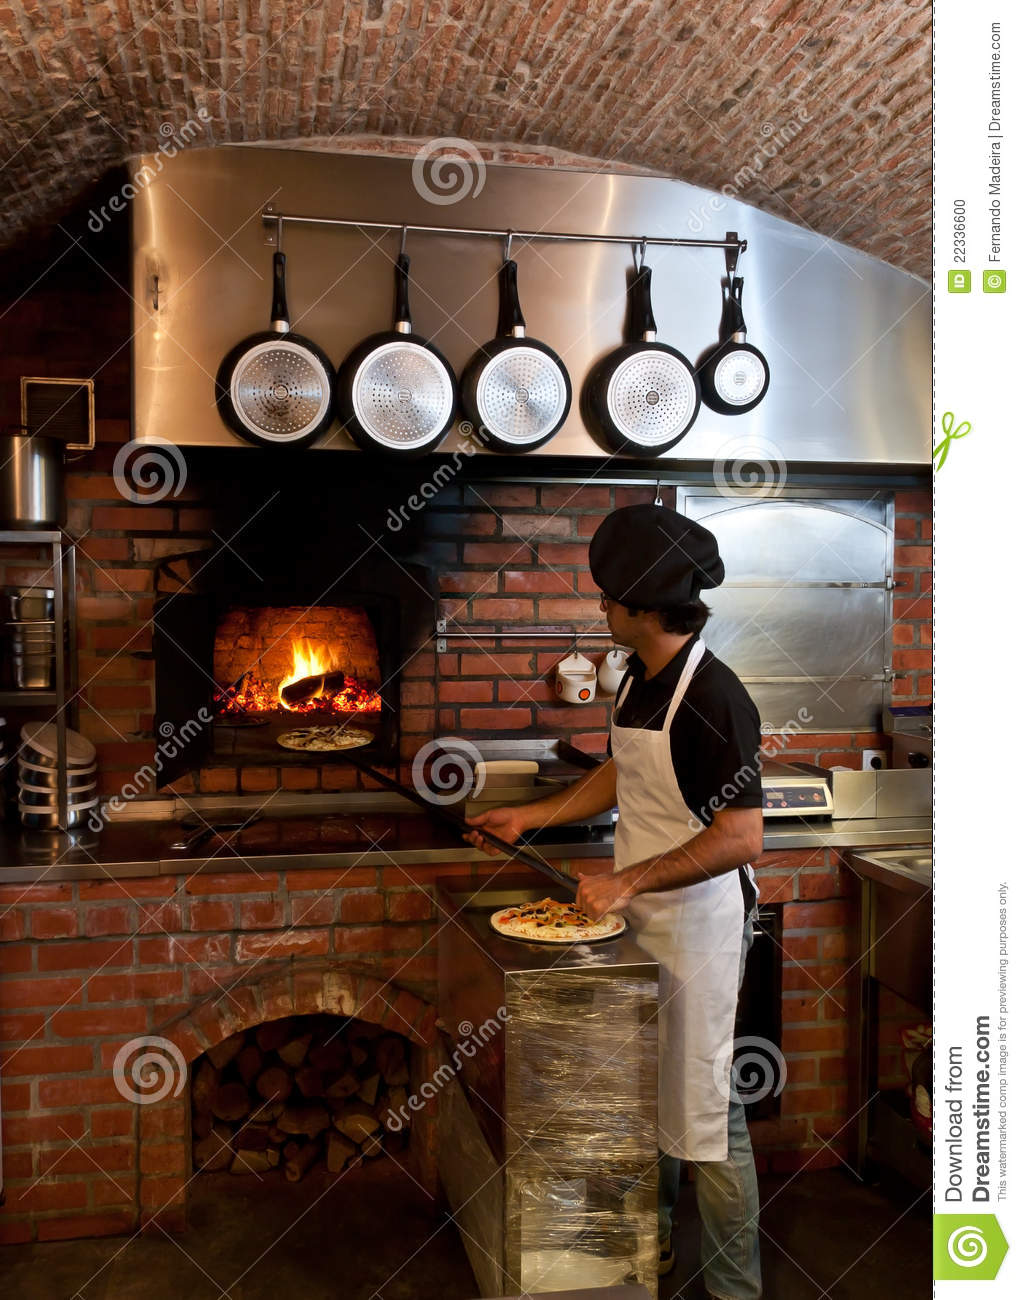 download pizza chef put the pizza inside the wood oven stock photo image of meal - Four A Pizza Interieur